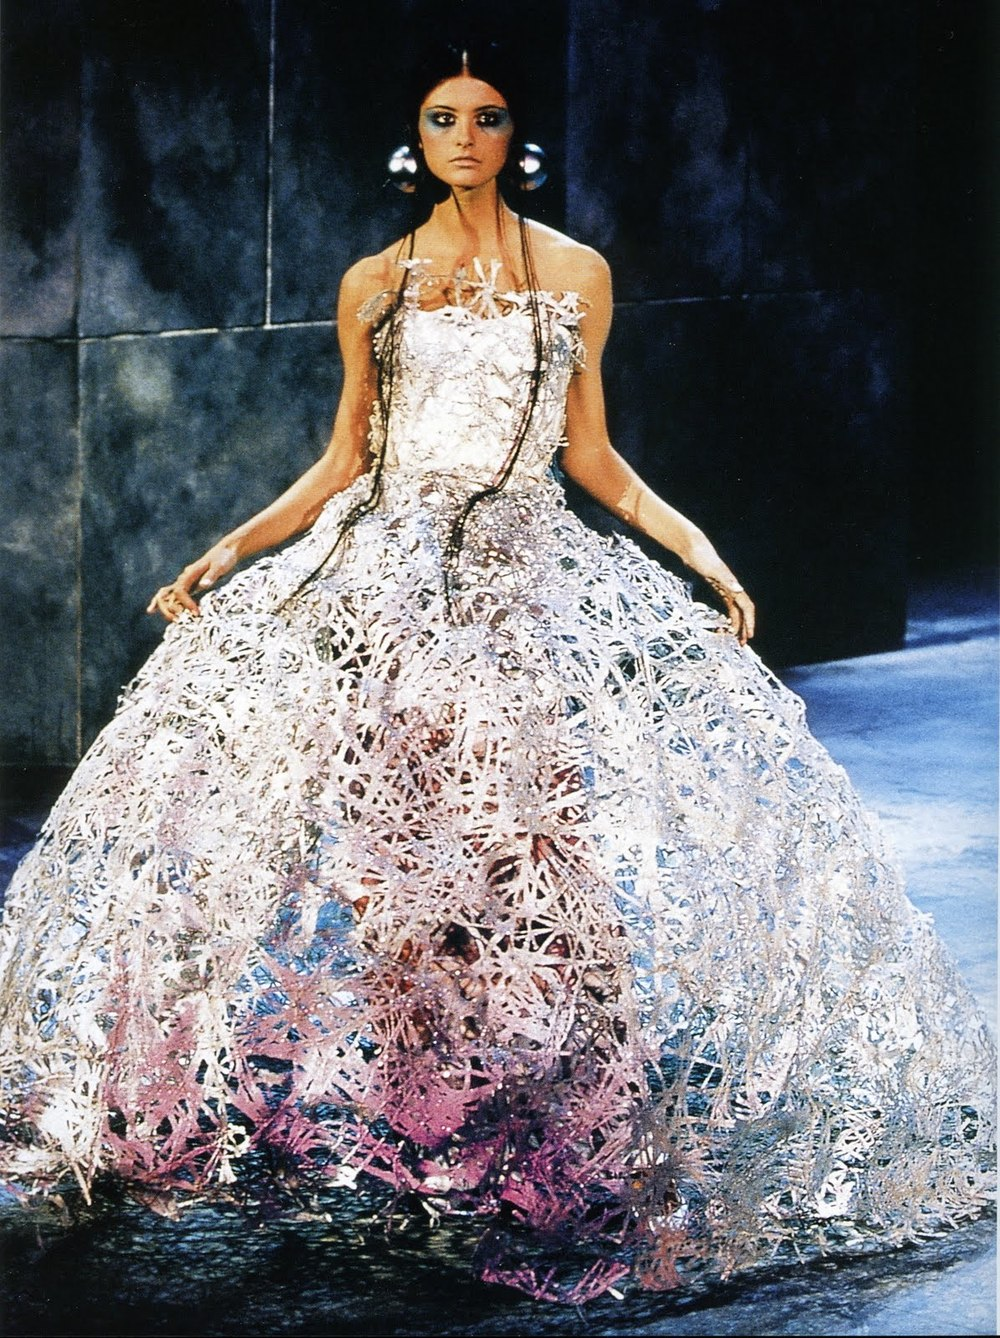 play: Alexander McQueen for Givenchy Haute Couture, S/S 2000